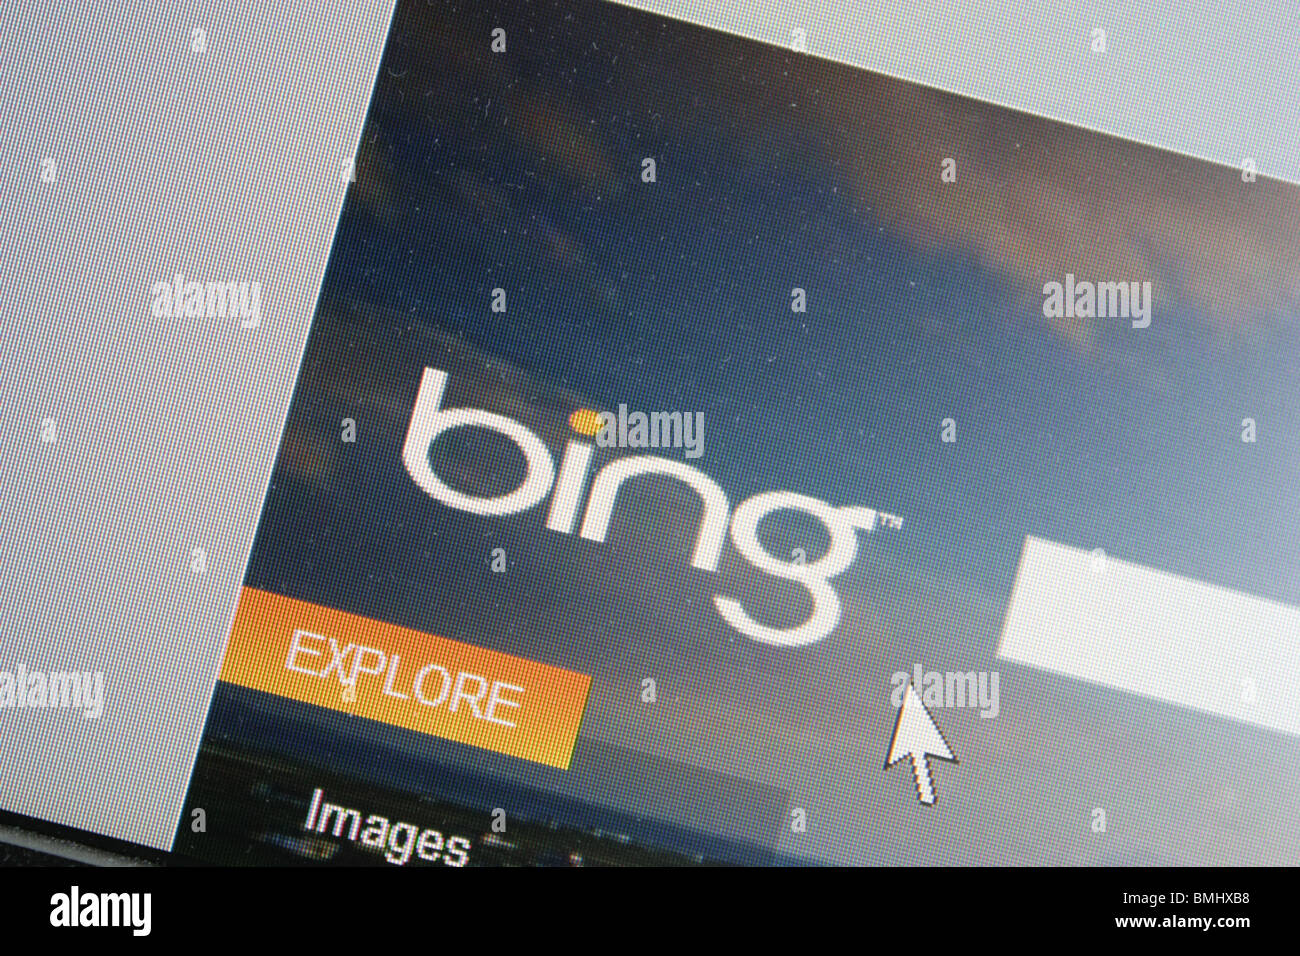 bing search engine computer screen shot - Stock Image